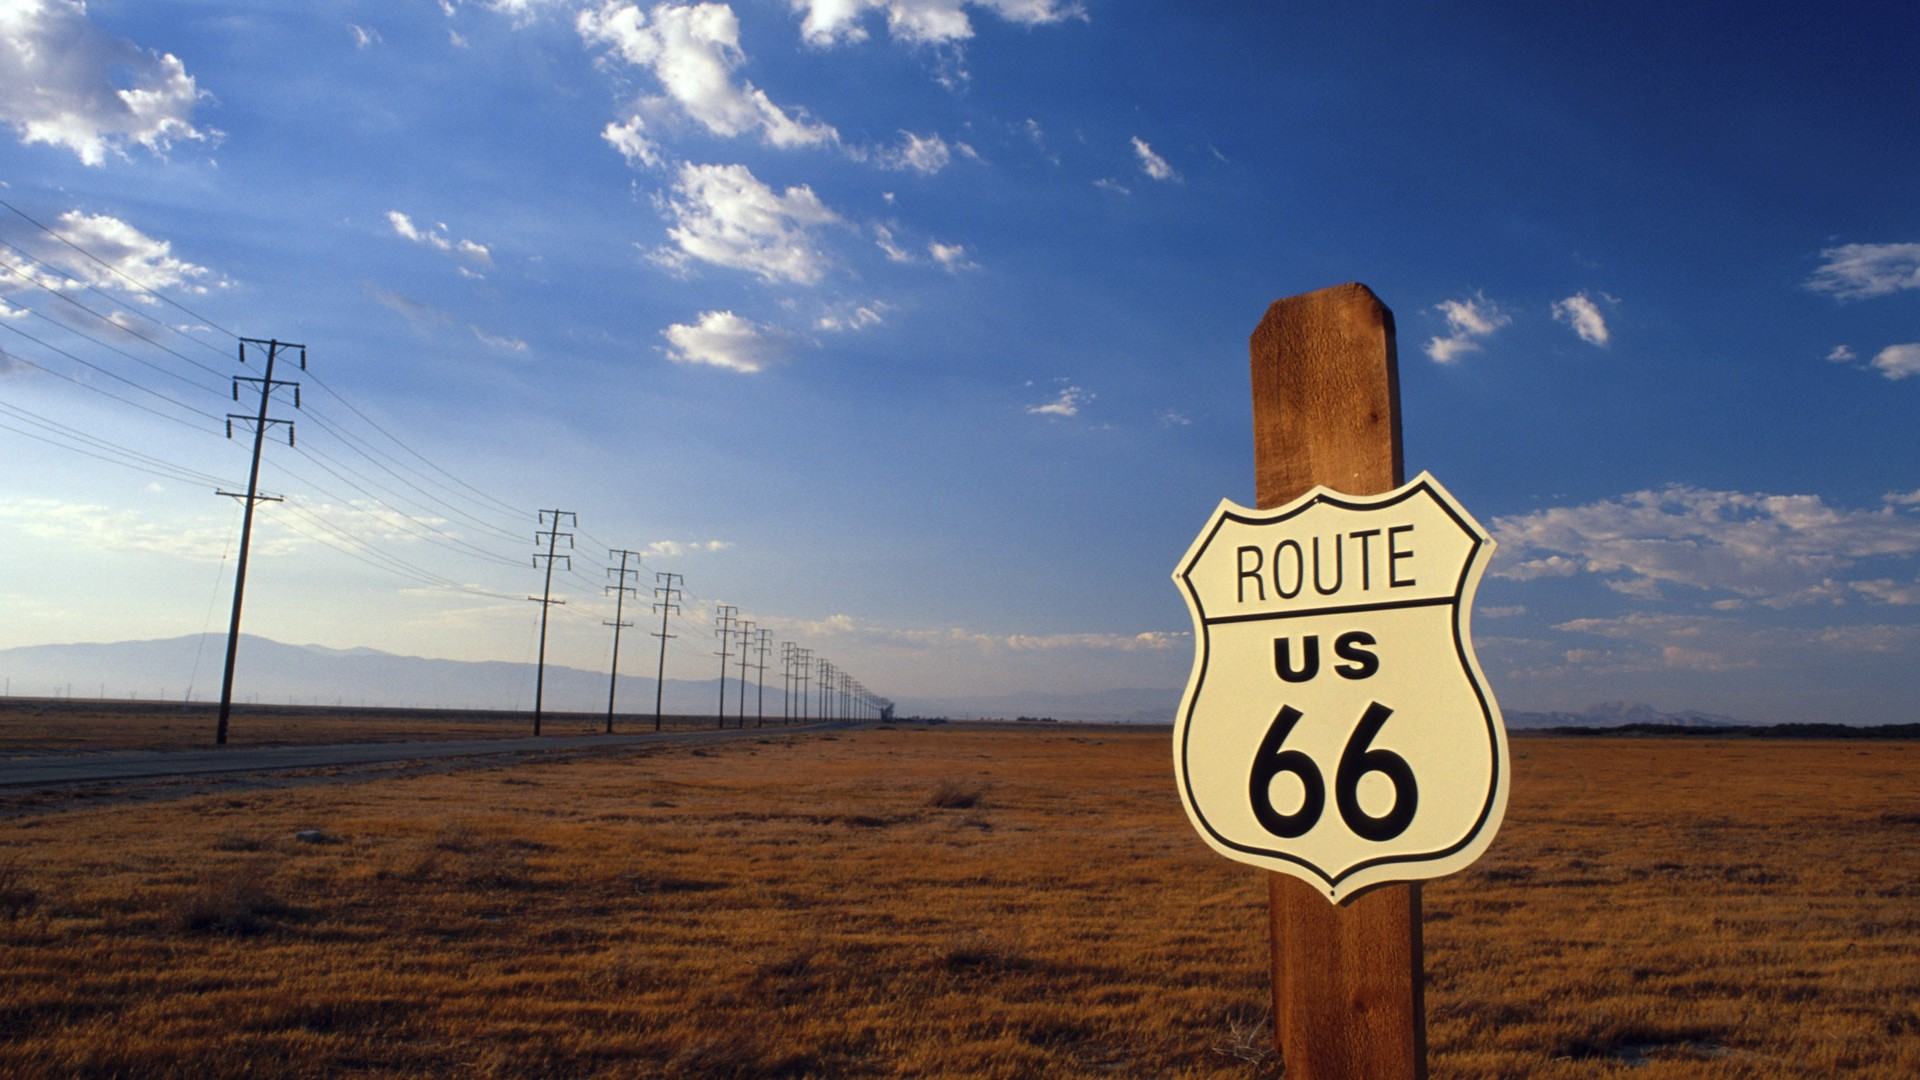 4 Excellent Hd Route 66 Wallpapers